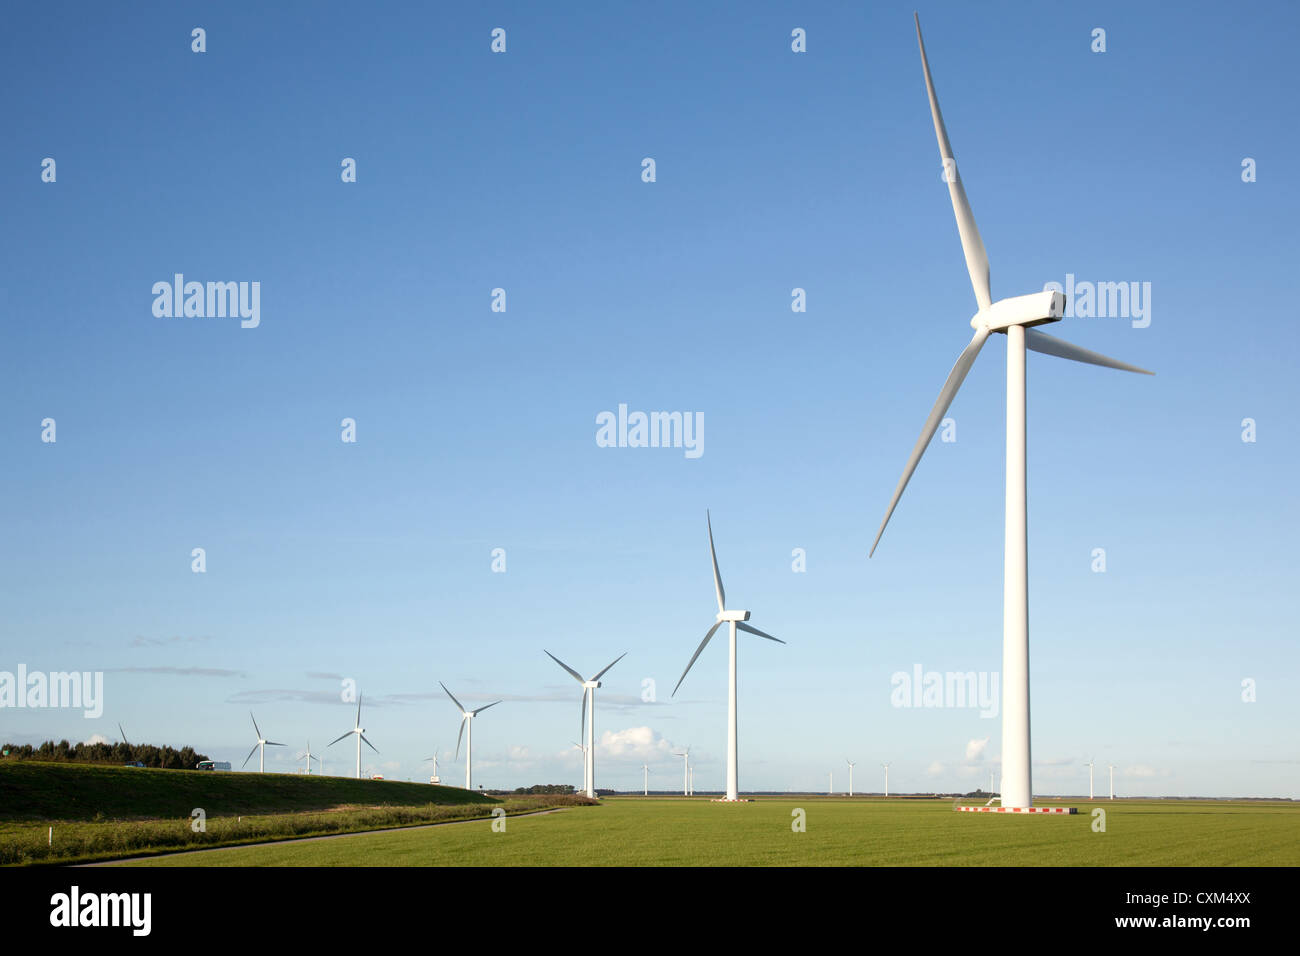 wind turbines in a row in the Dutch province of Flevoland - Stock Image